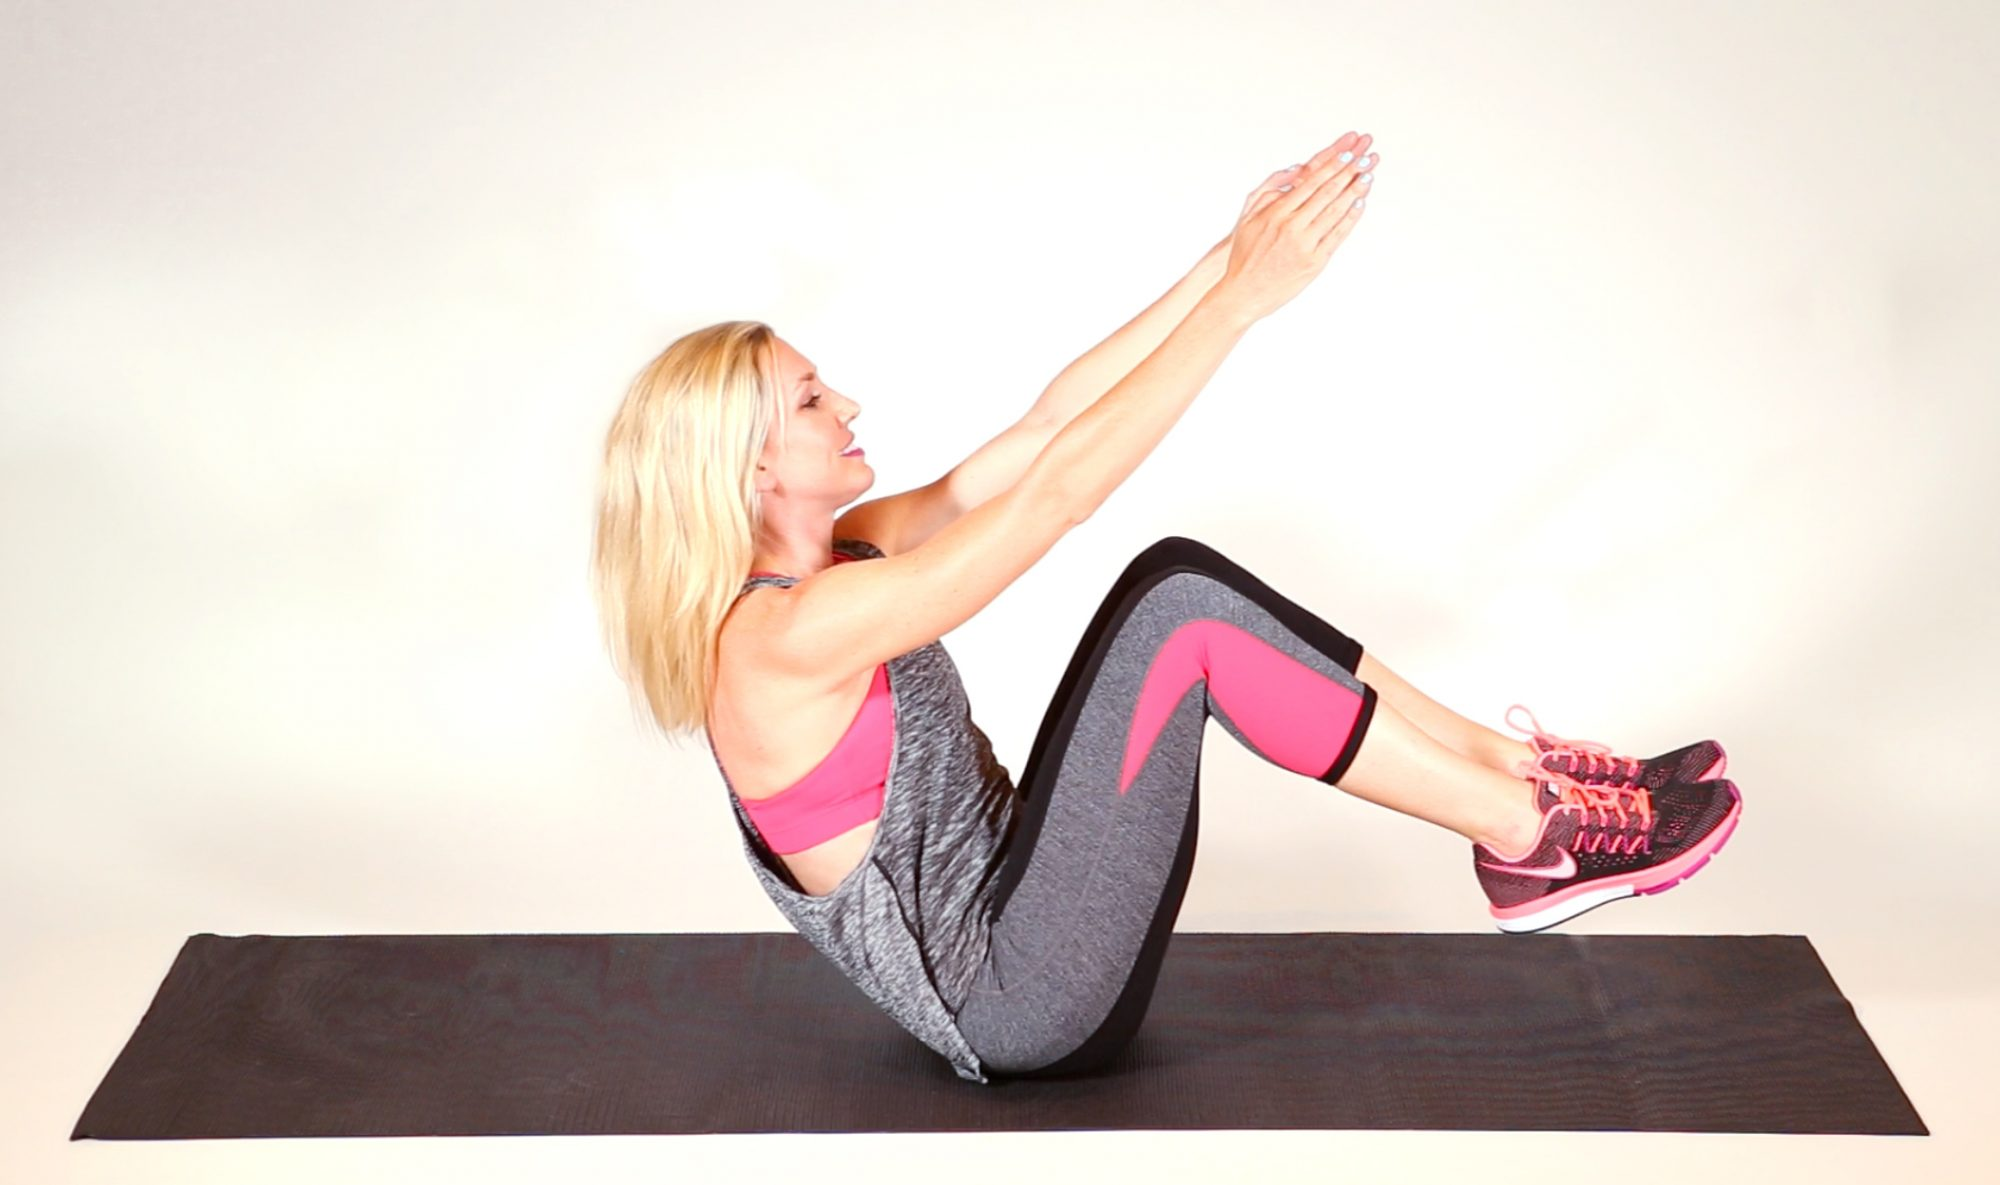 Get Ripped: 3 Easy Abs Moves You Can Do at Home